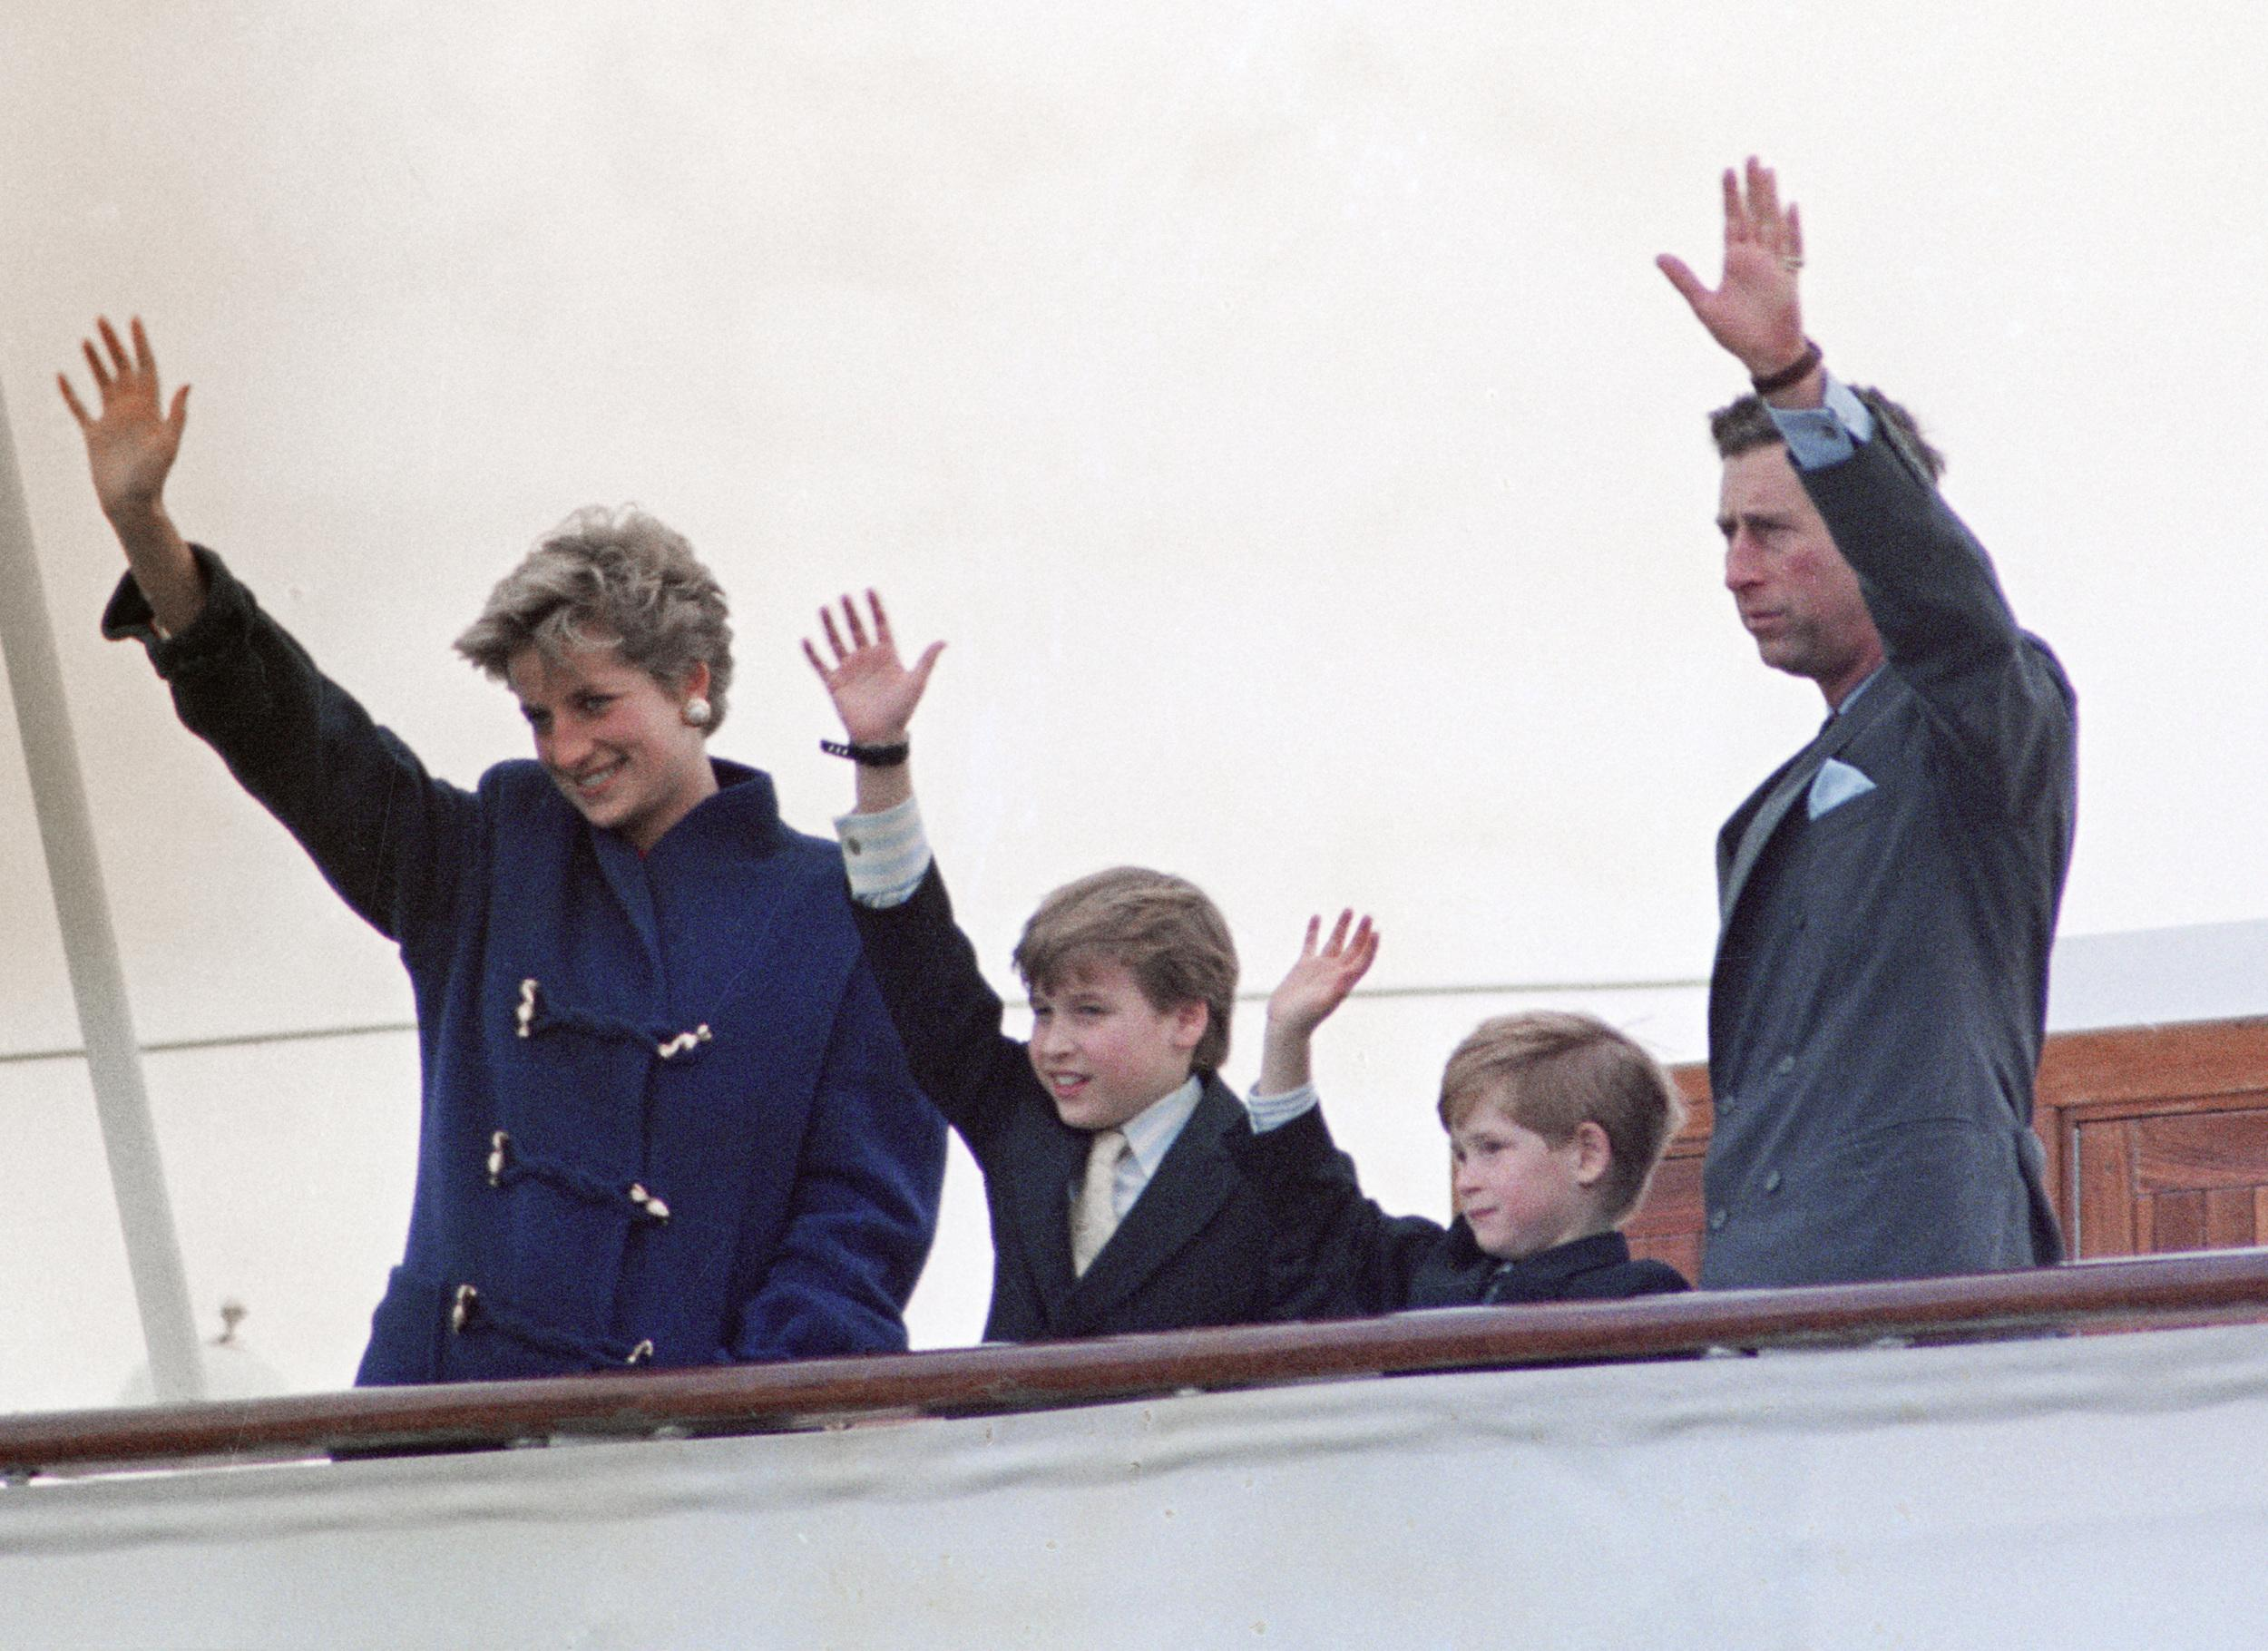 The Prince and Princess of Wales and their two children, Prince William, 9, and Prince Harry, 7, wave goodbye from the deck of the Royal Yacht Britannia to the people of Toronto at the end of the Royal couple's five-day official visit to the city.